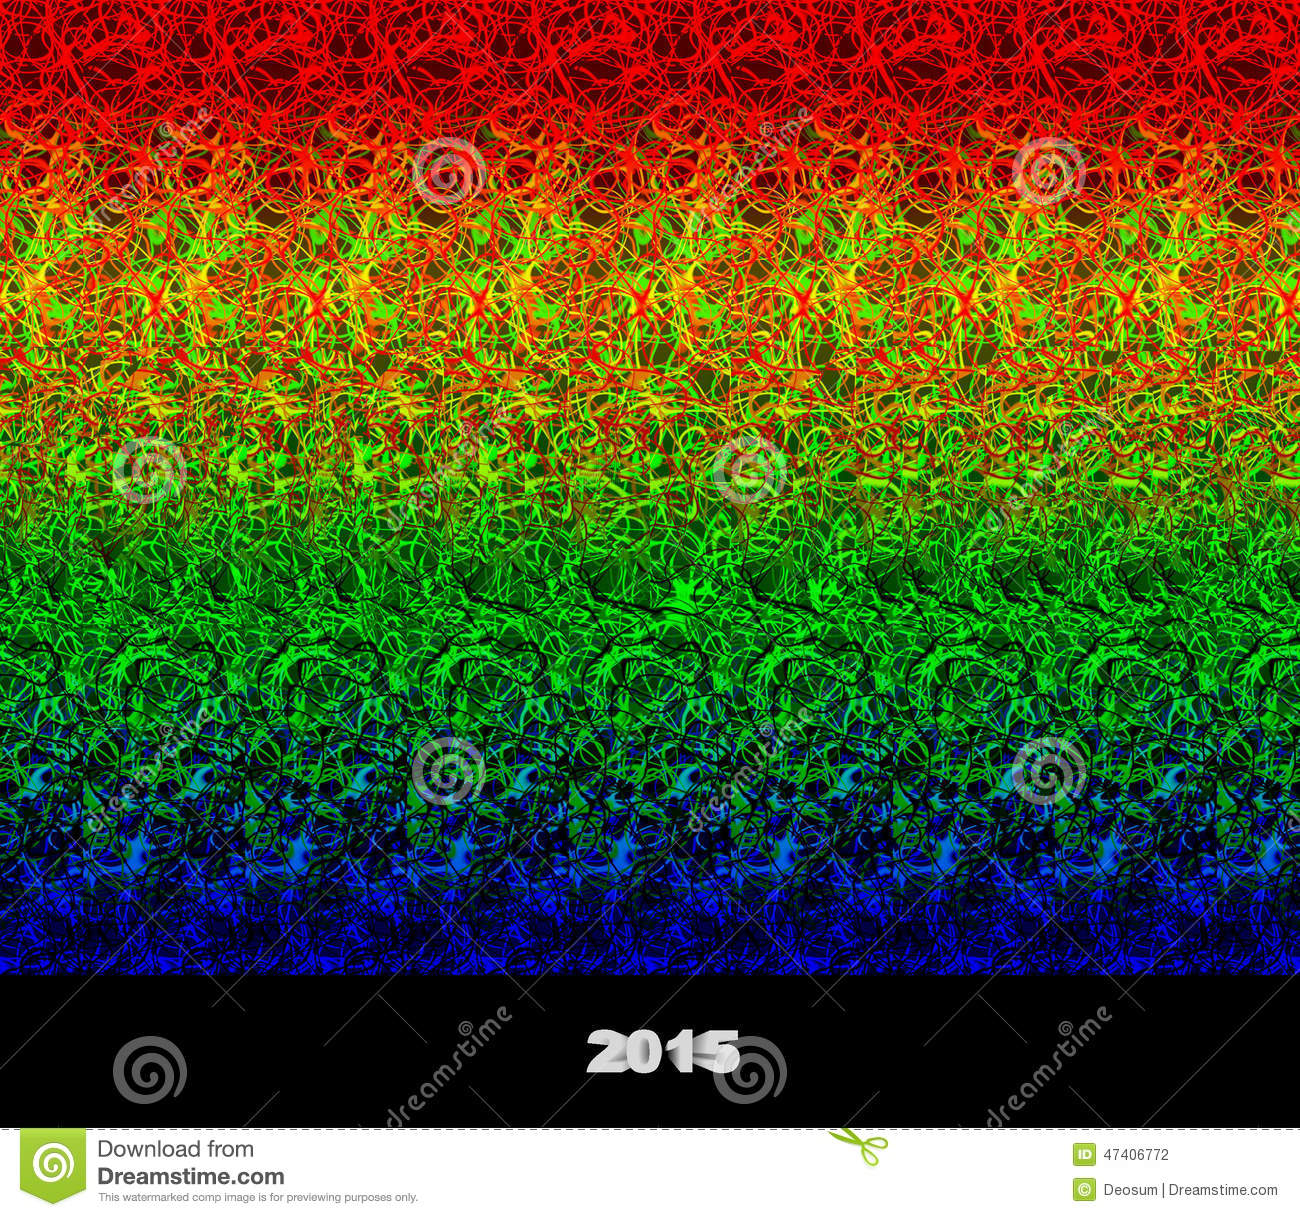 Illusion Of A 3D Image Stock